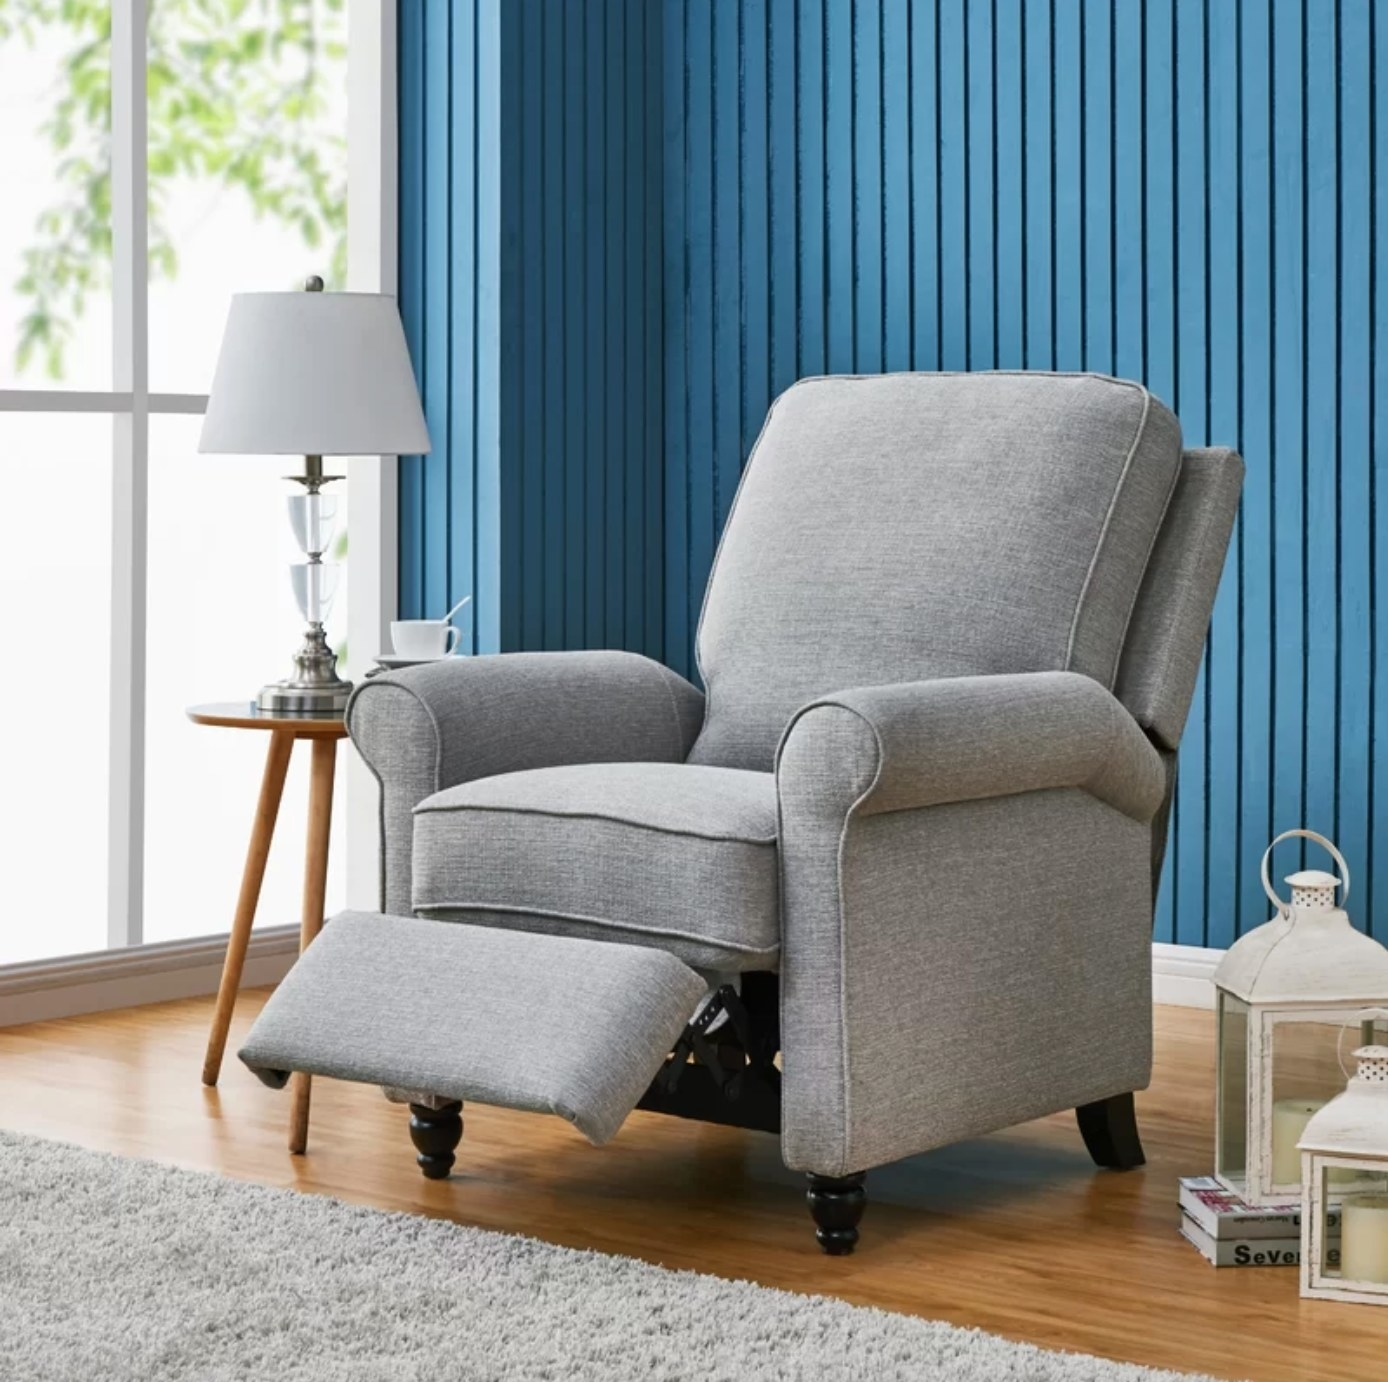 The upholstered manual recliner chair in dove gray polyester